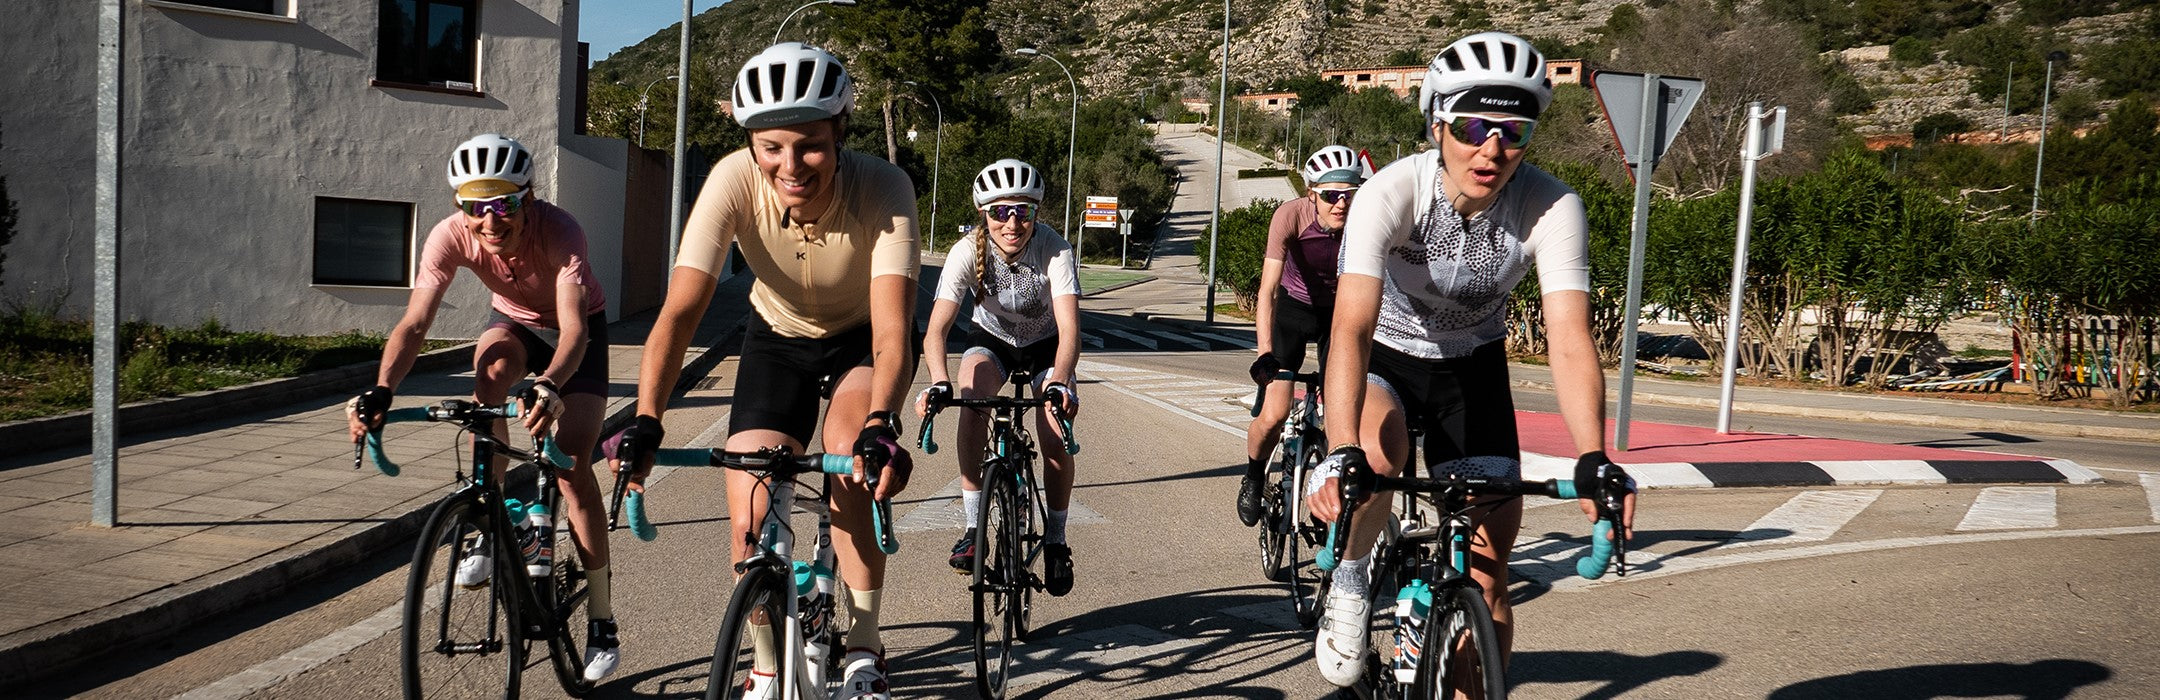 katusha women's cycling apparel - performance collection